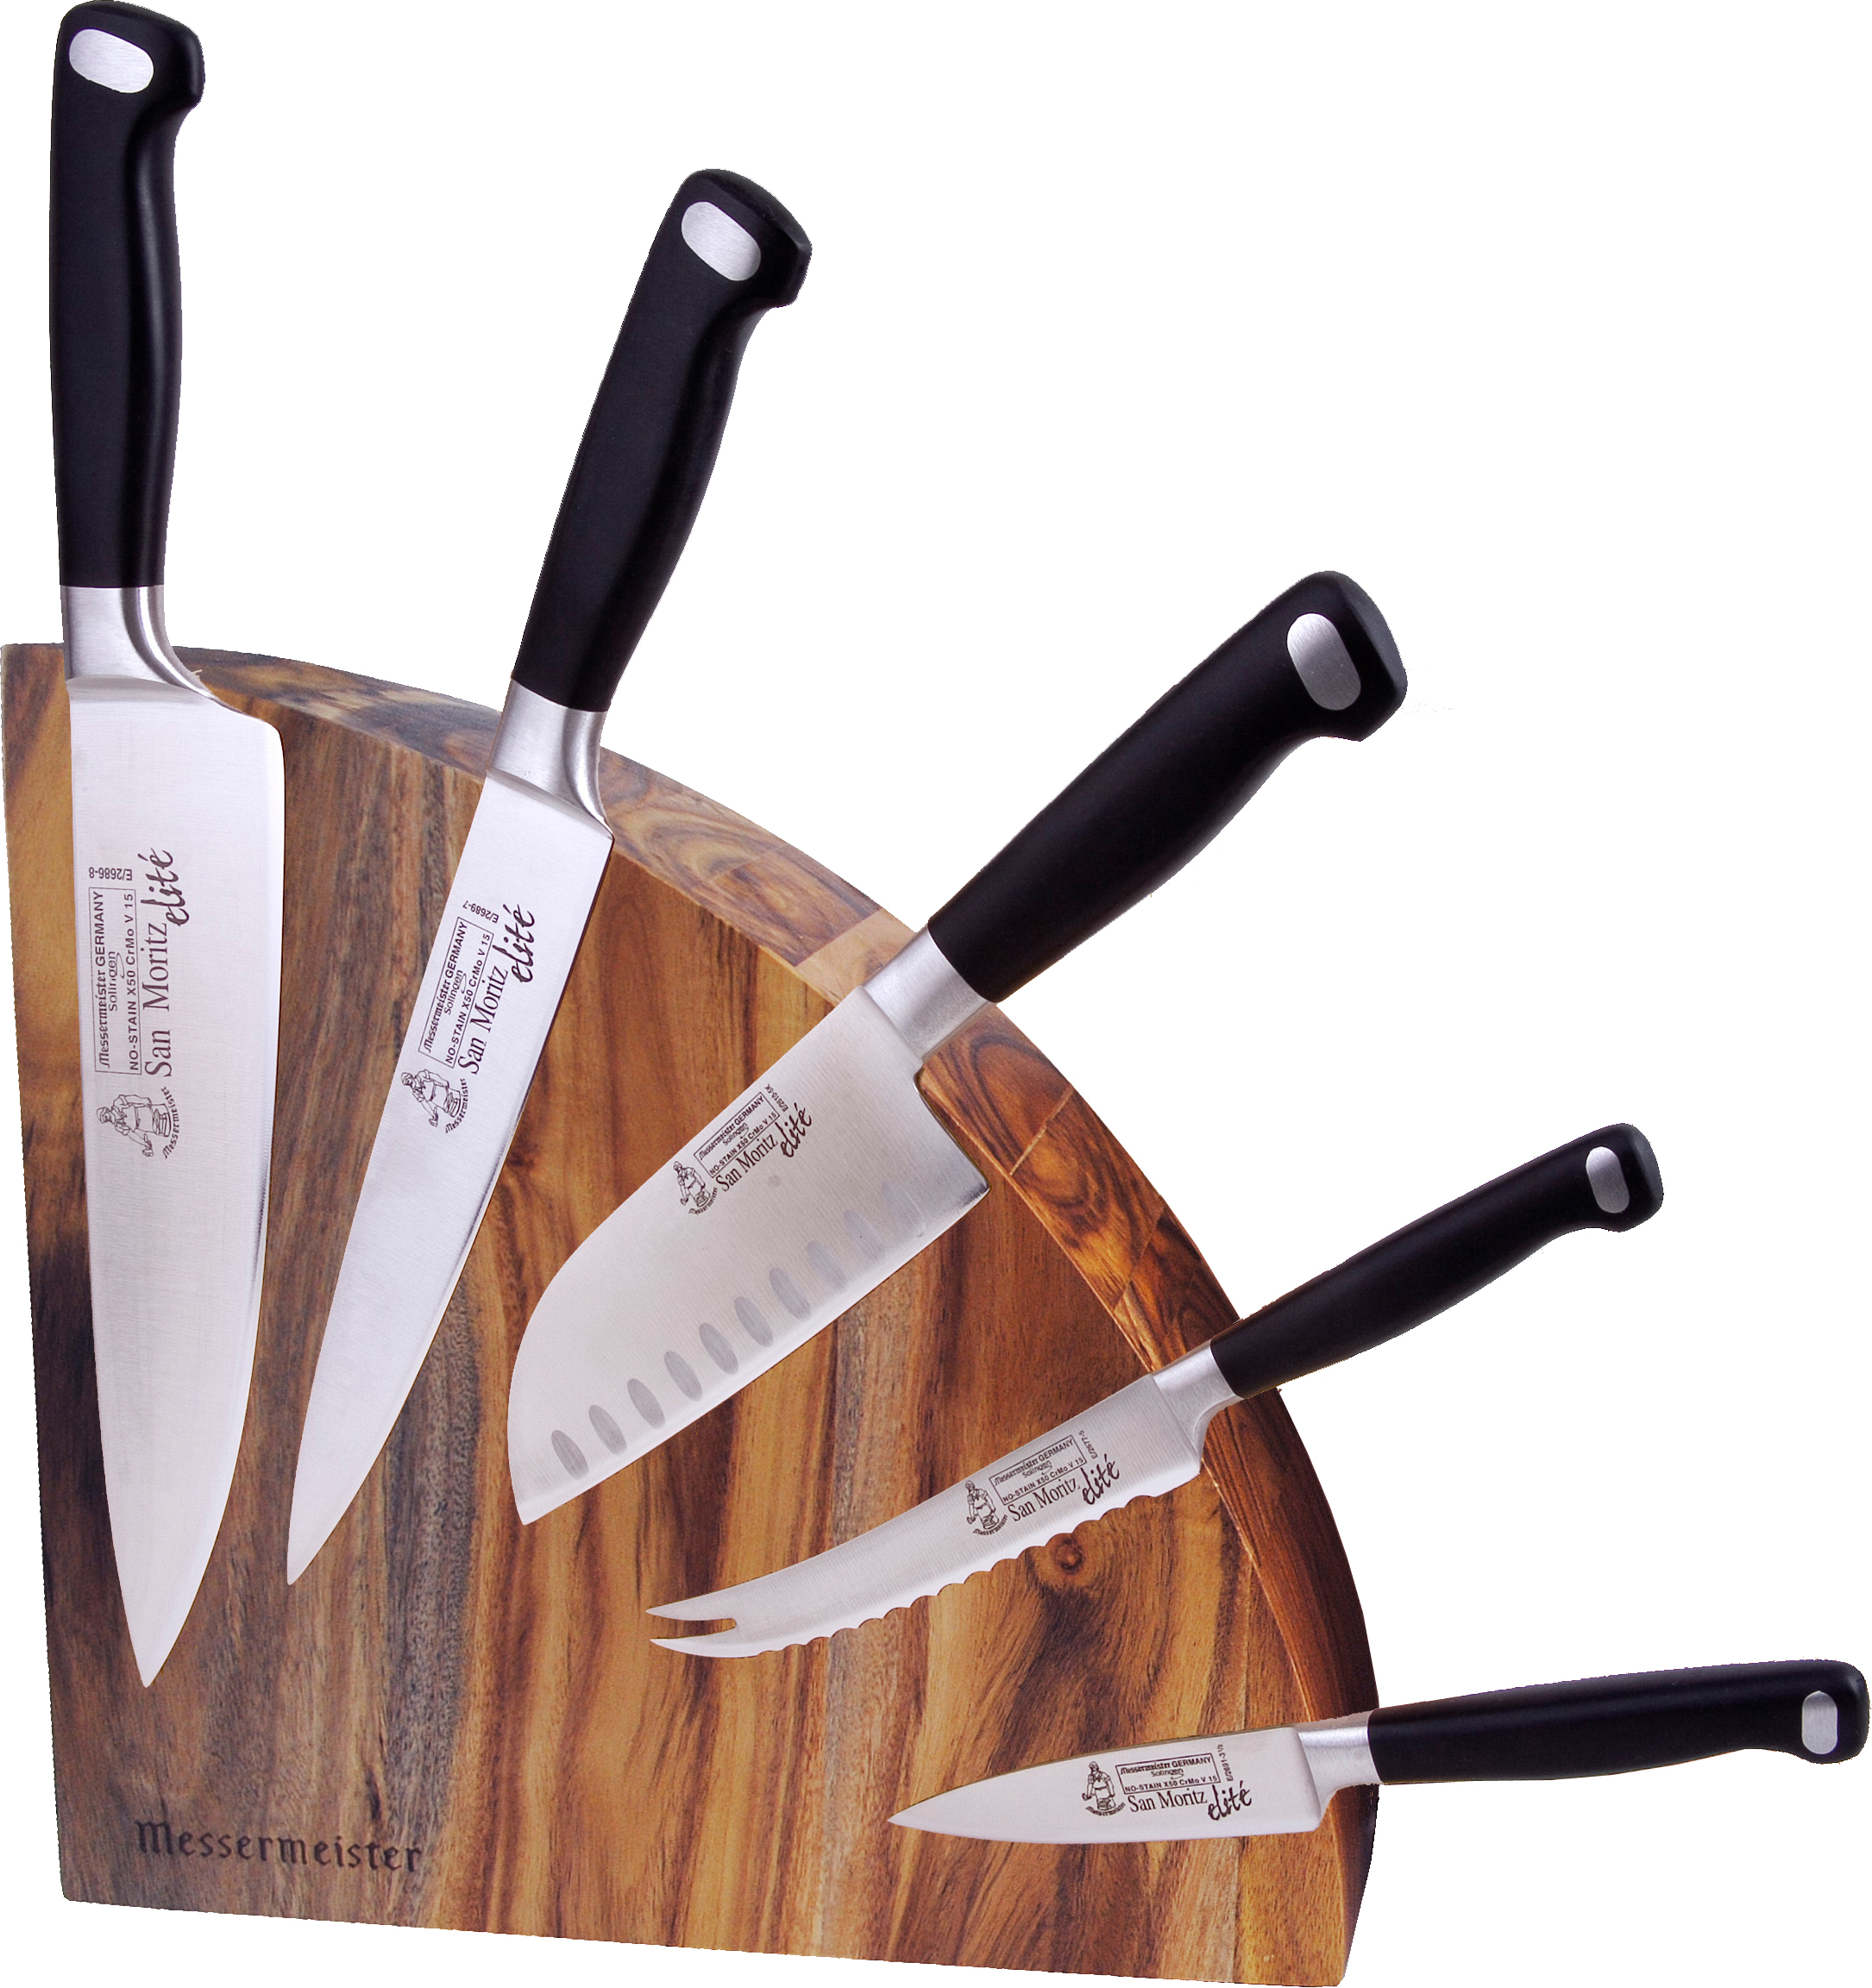 Unique Knife Blocks Put Blades On Display Kitchenware